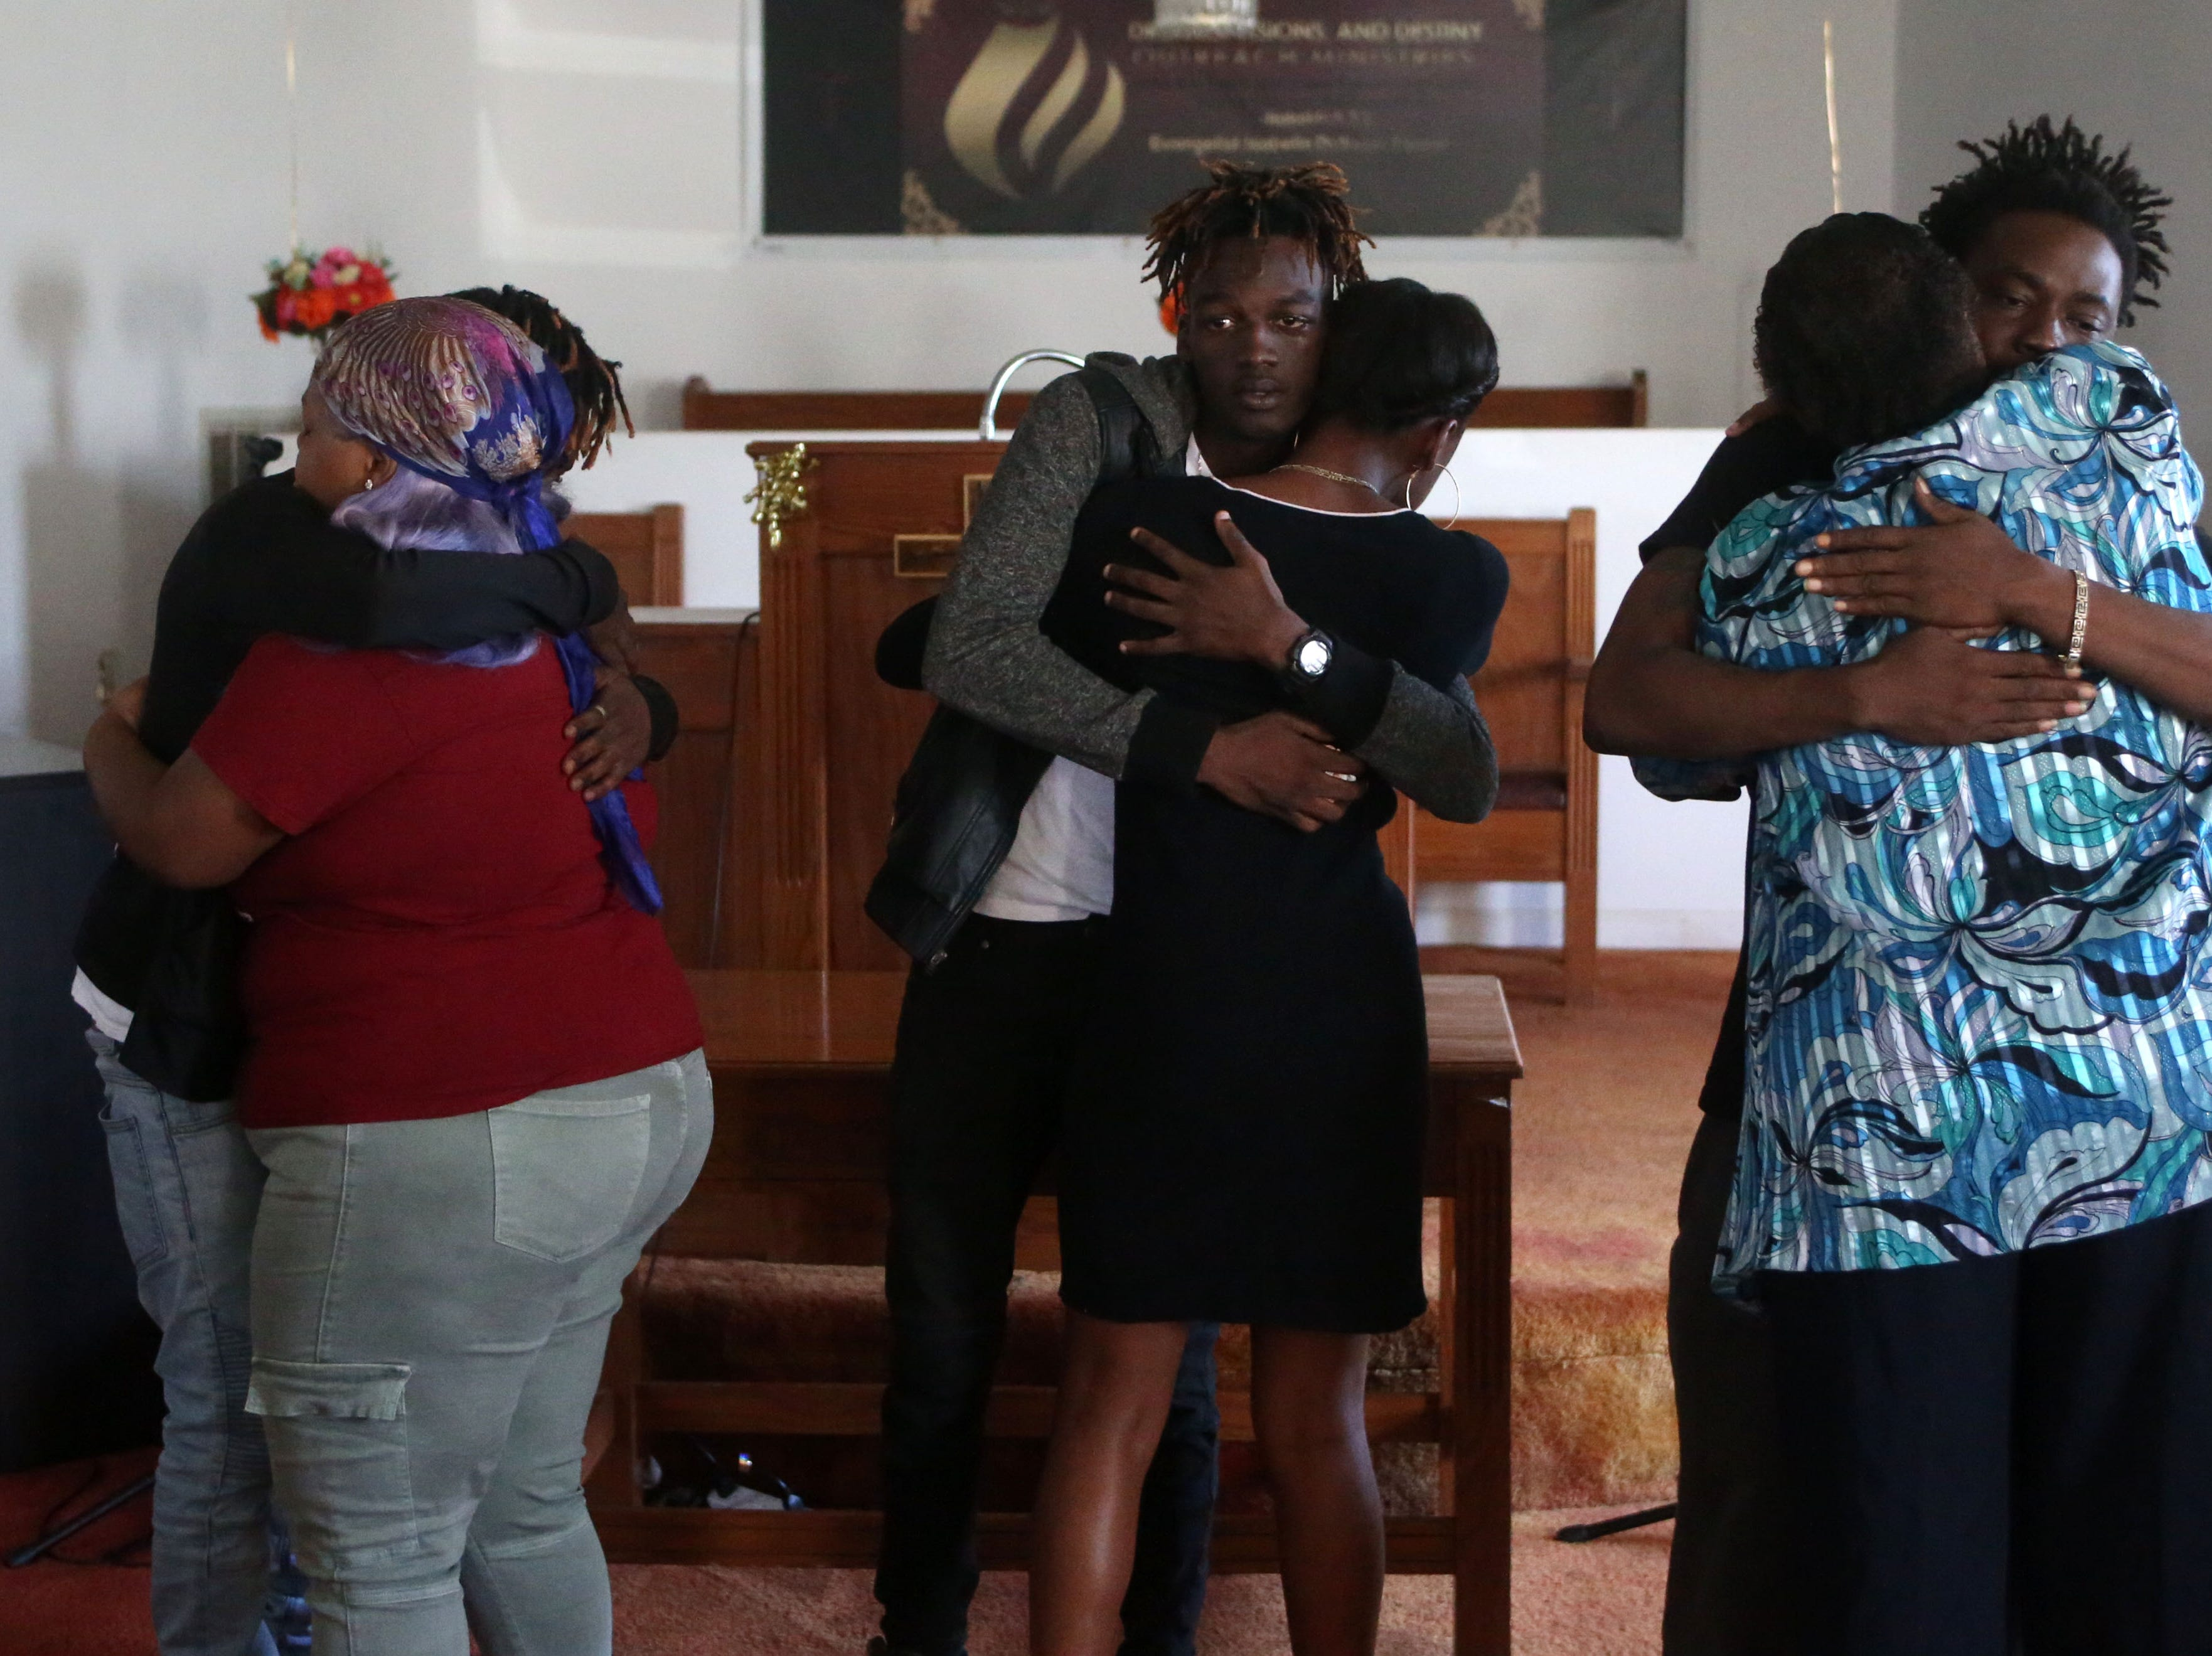 Family of Demashell Bass, a woman who could not receive medical attention and died during the hurricane, from left to right, Tyran Grant, 21, son, Tyrone Grant, 23, son, and Lawrence Williams, 33, brother, receive condolences from church members at the Dream, Vision, and Destiny (DVD) Ministry in Gretna, Fla., on Sunday Oct. 14, 2018. Hurricane Michael struck the panhandle on Wednesday, Oct. 10, 2018, leaving many small towns devastated and without power for days.